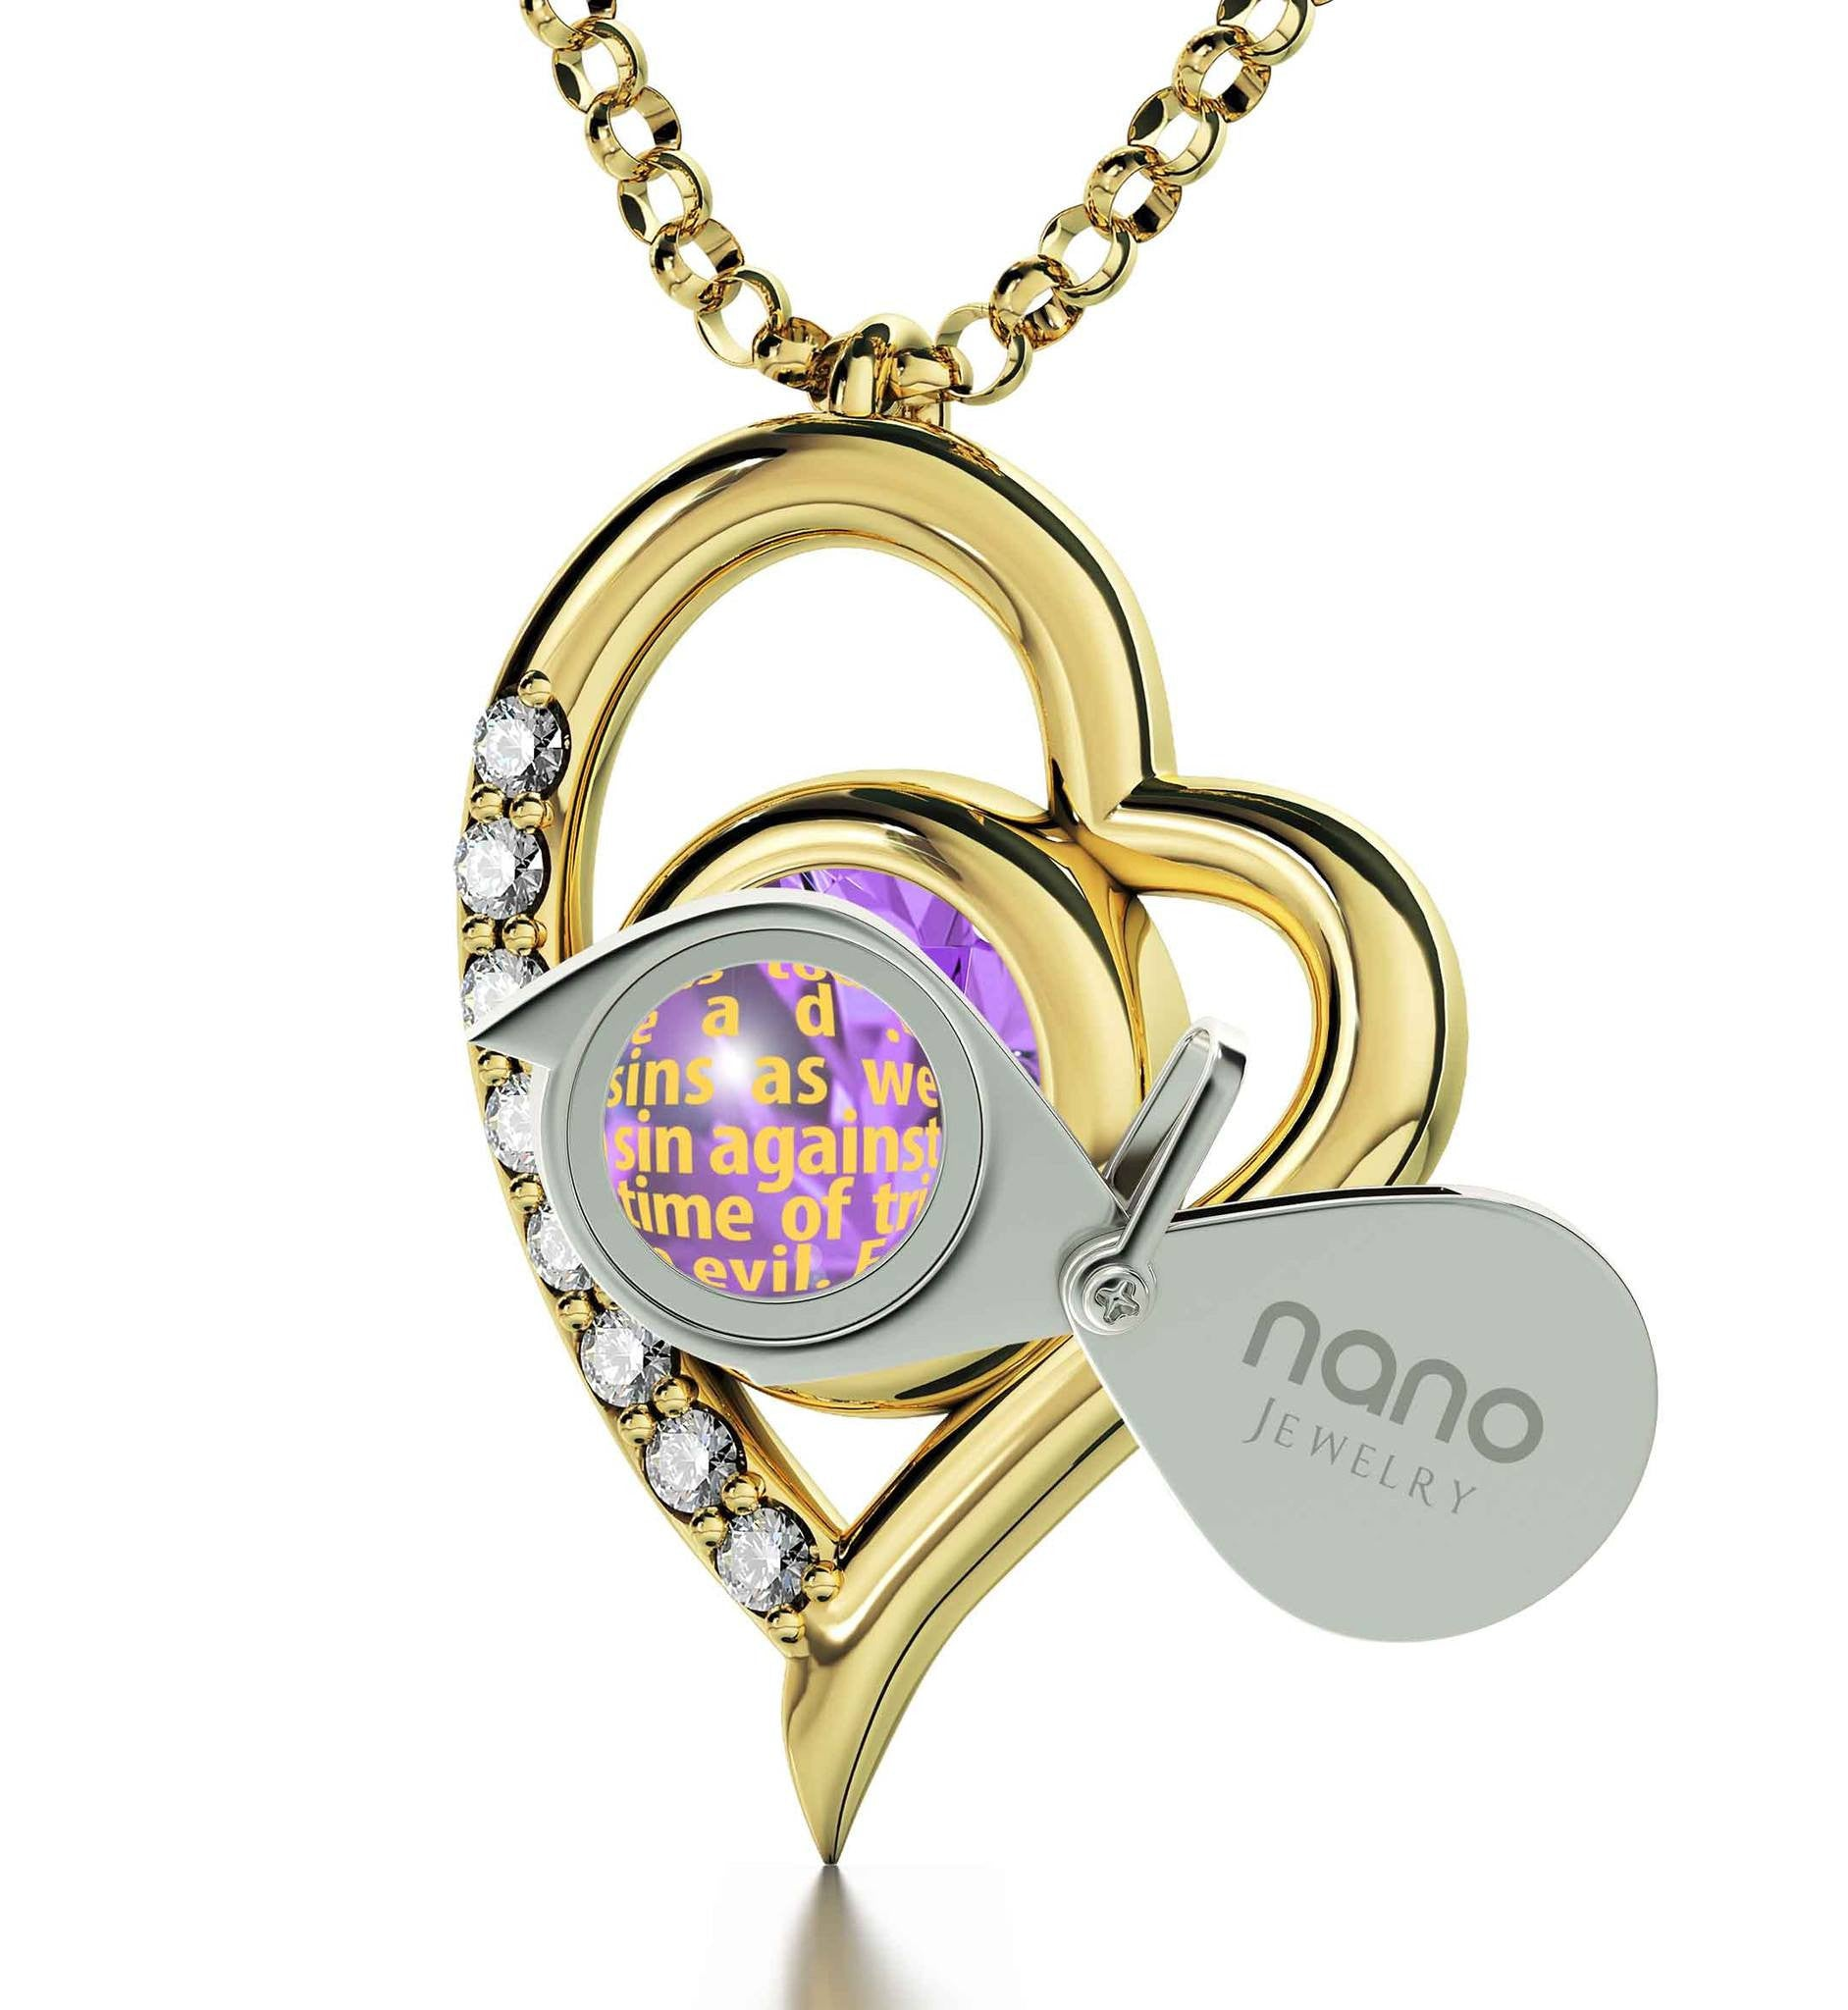 """Lord's Prayer Engraved in 24k Gold, Cute Necklaces for Her, Birthday Present for Best Friend, Meaningful Jewelry"""